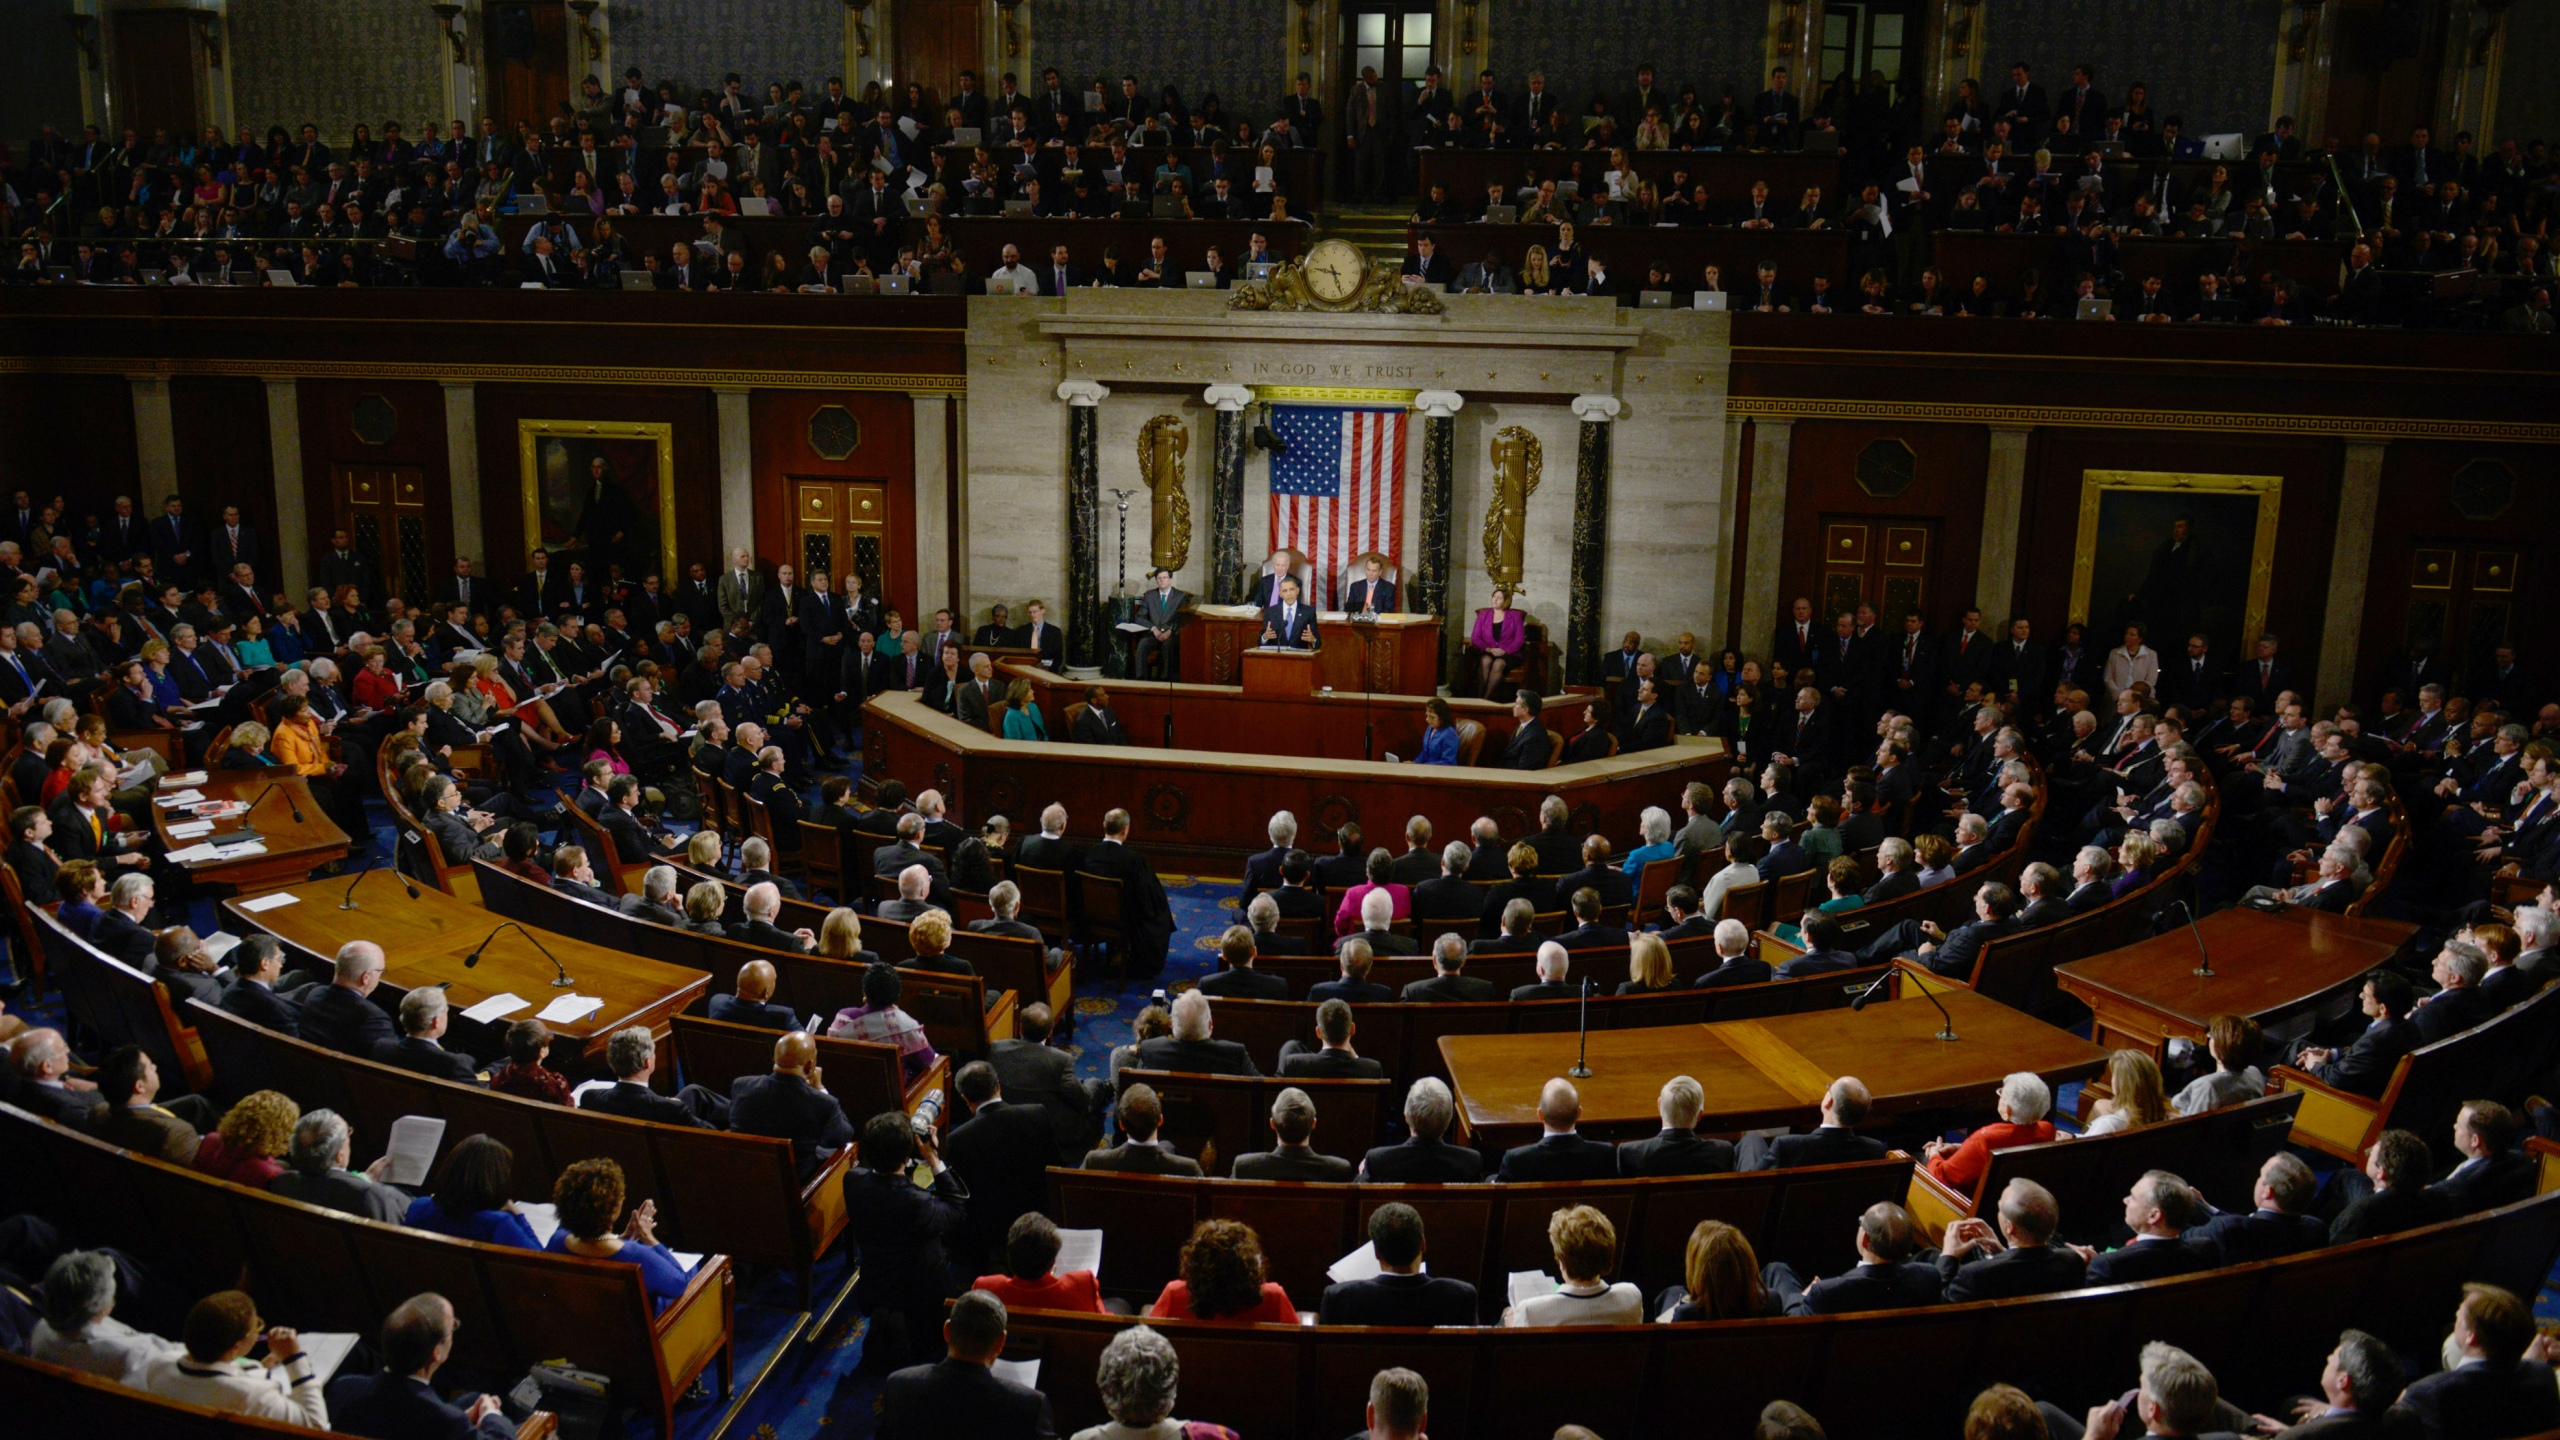 President Barack Obama delivers the annual State of the Union address in 2013. (Photo: BRENDAN SMIALOWSKI/AFP/Getty Images)